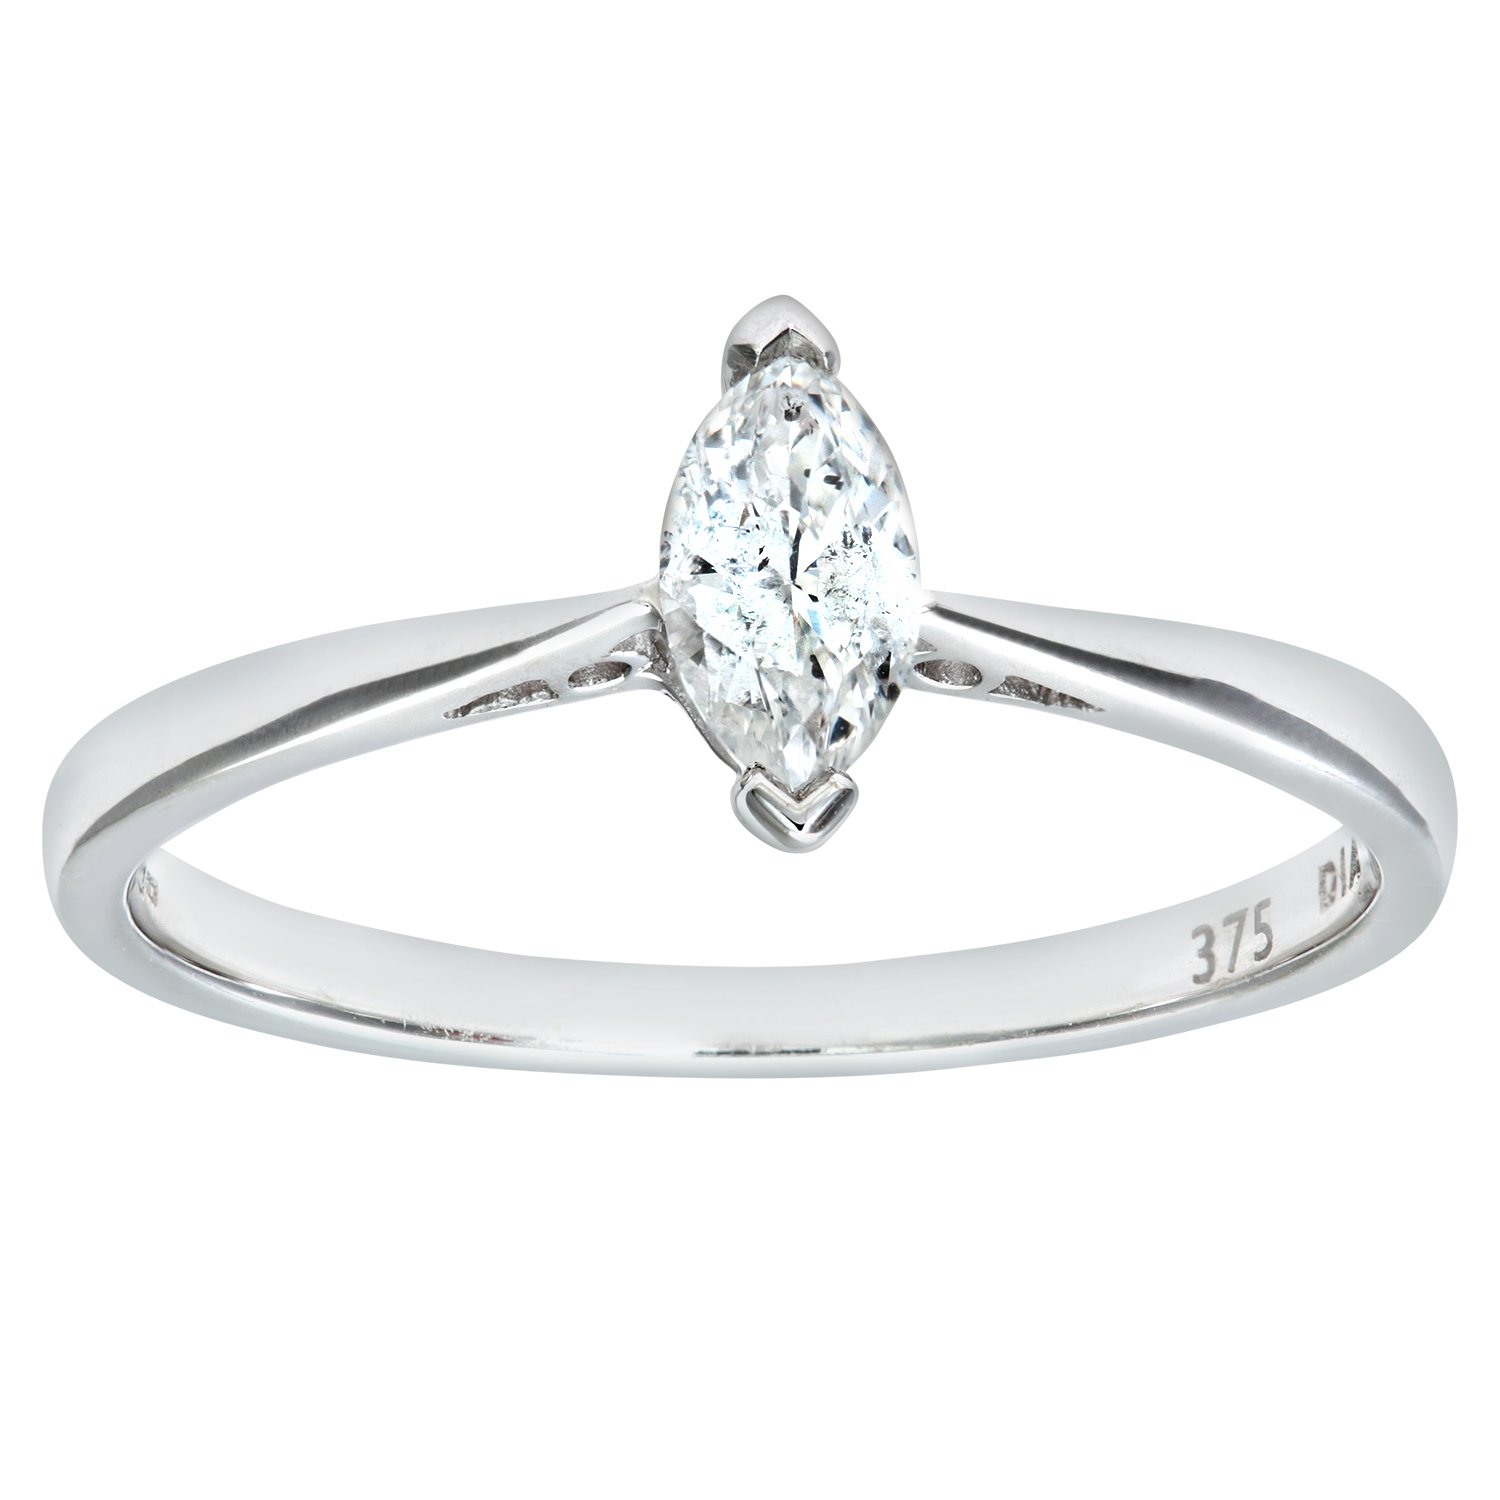 marquise quick rings cut engagement schaffrath calla jewelry marquis gebrueder diamond gebruder solitaire view ring alara